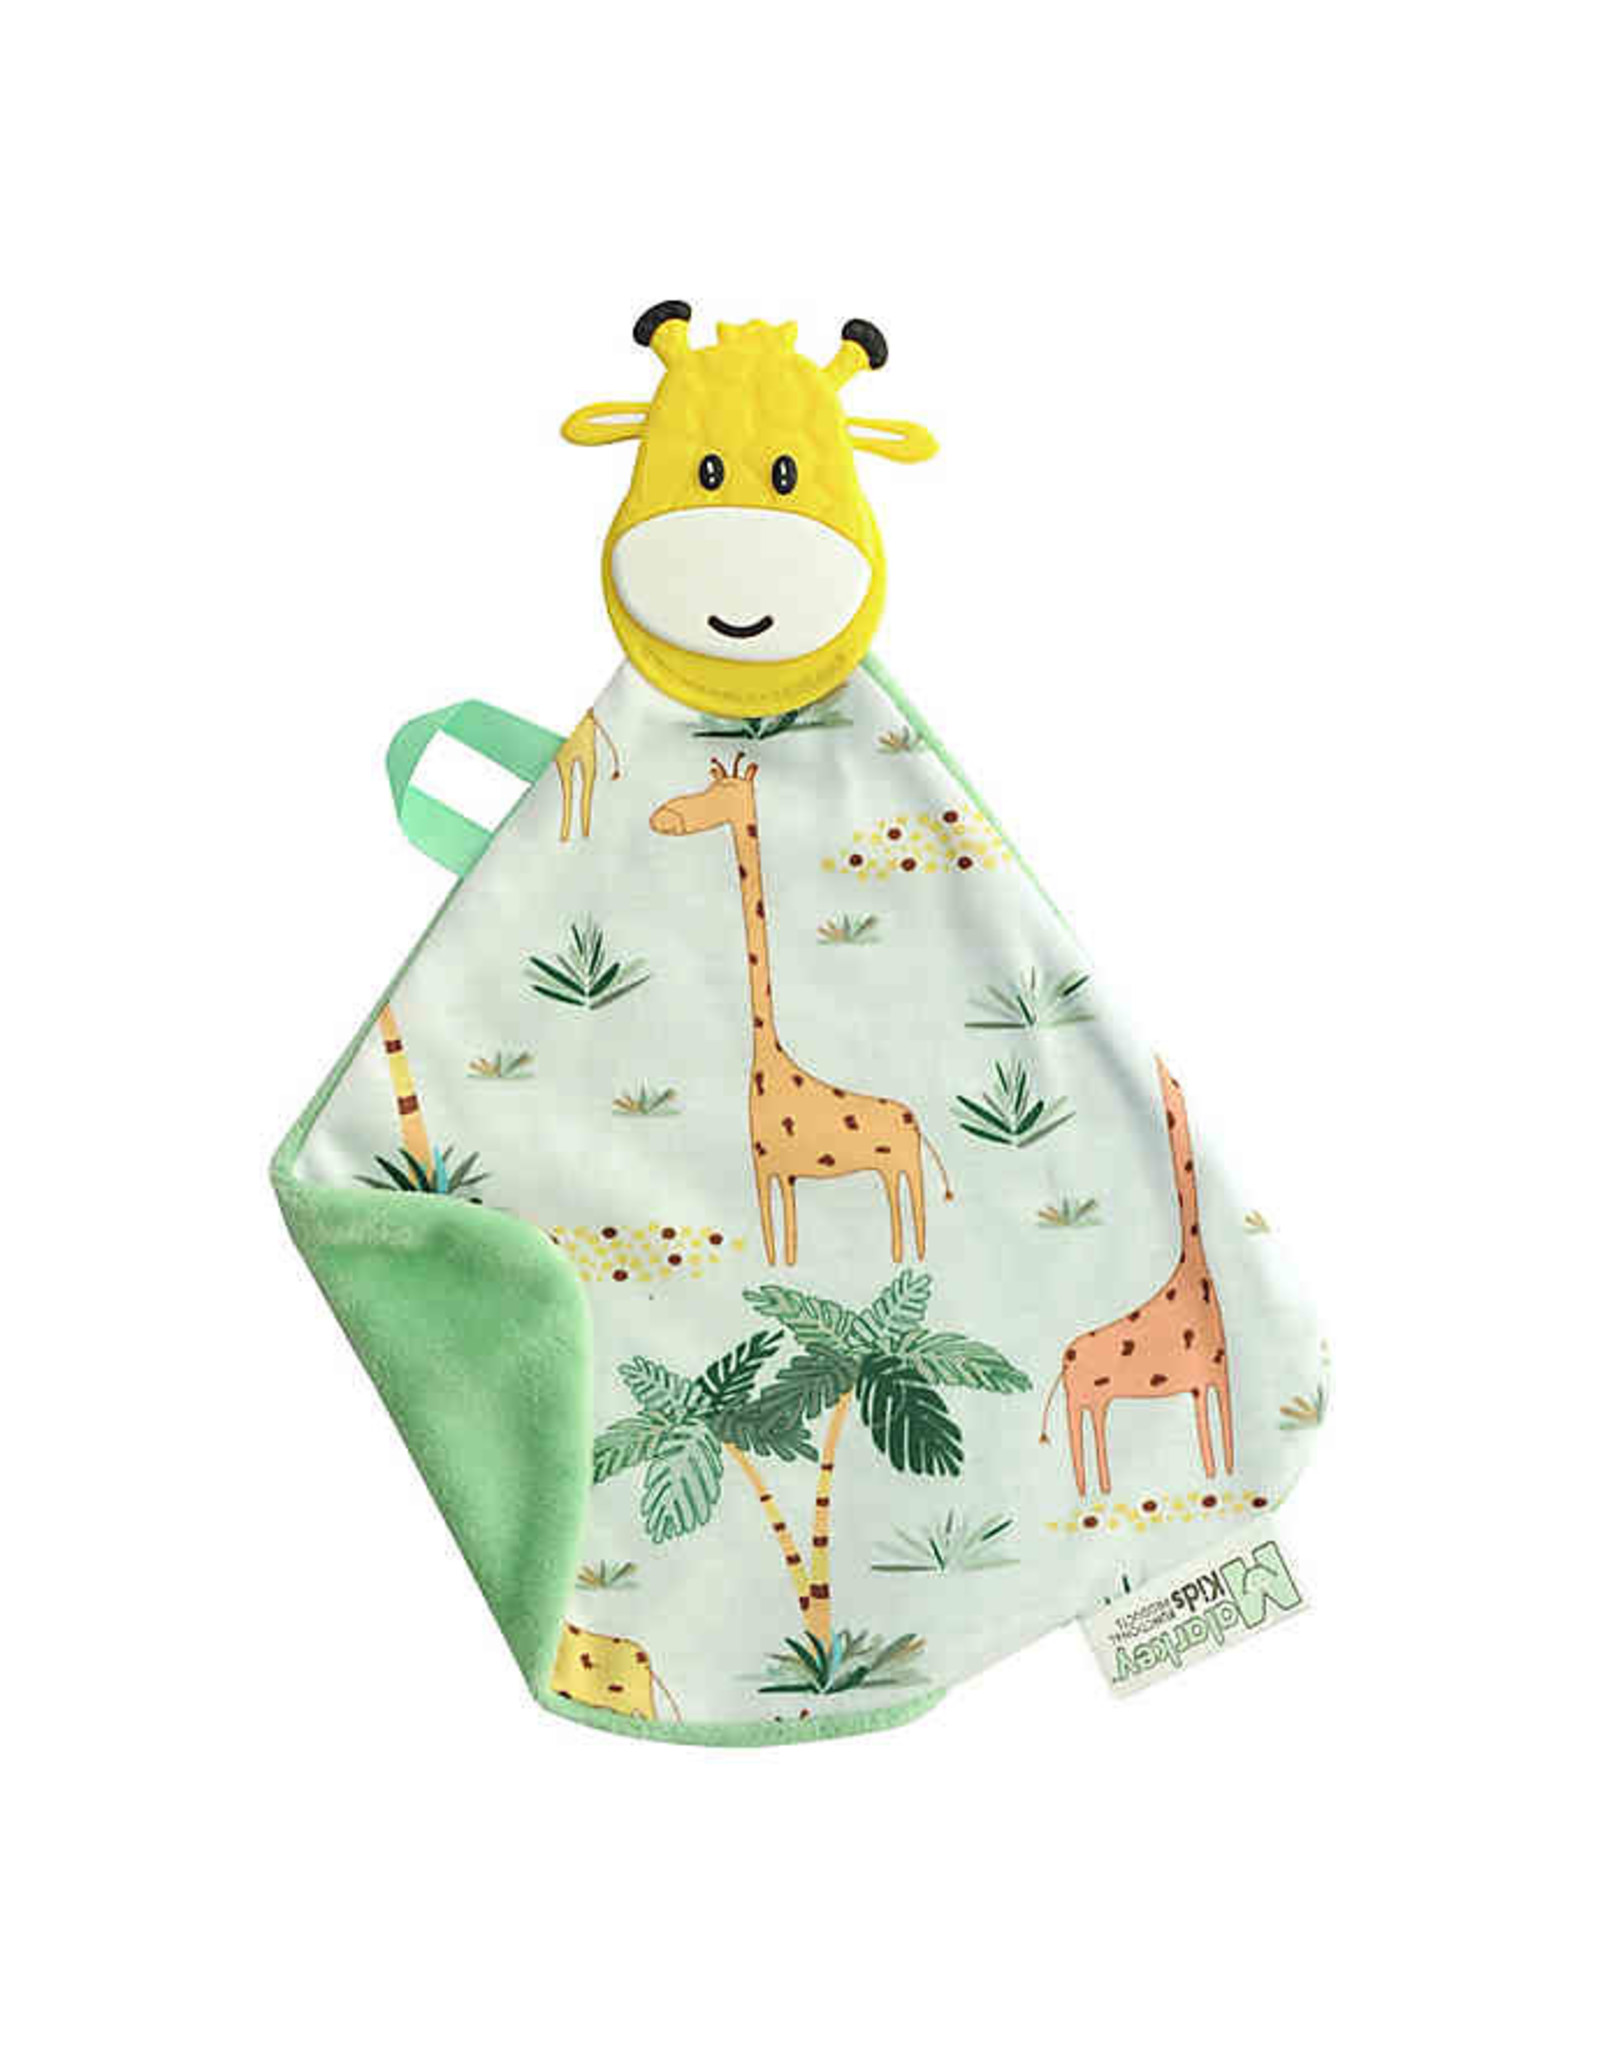 Malarkey Kids Malarkey Kids- Munch It Blanket: Gentle Giraffe